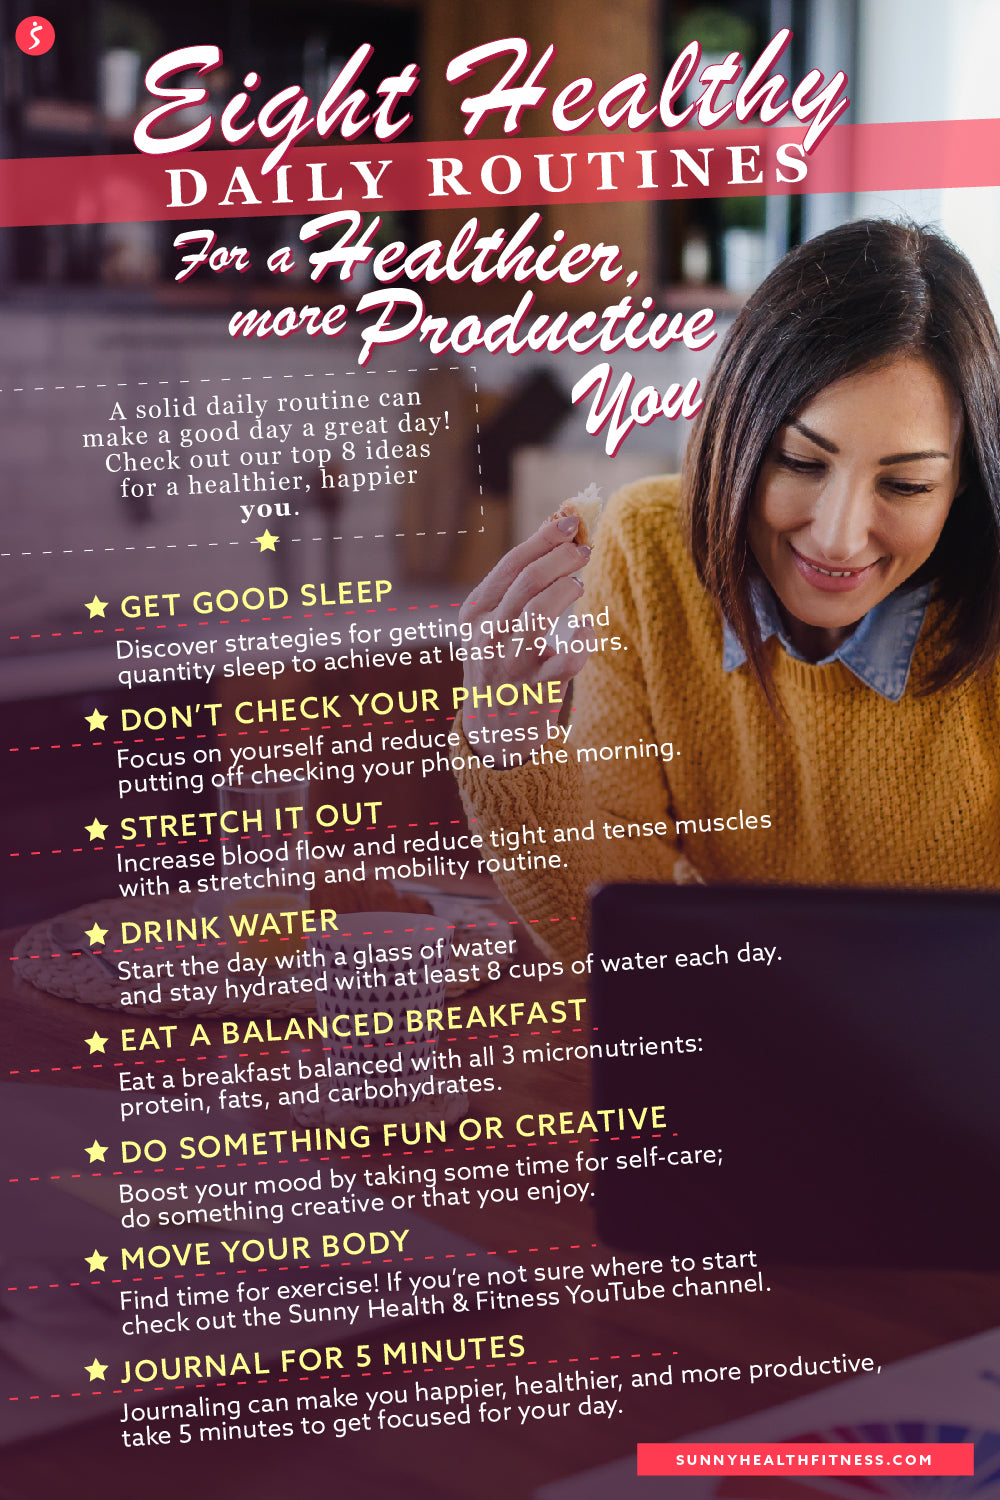 8 Healthy Daily Routines Infographic